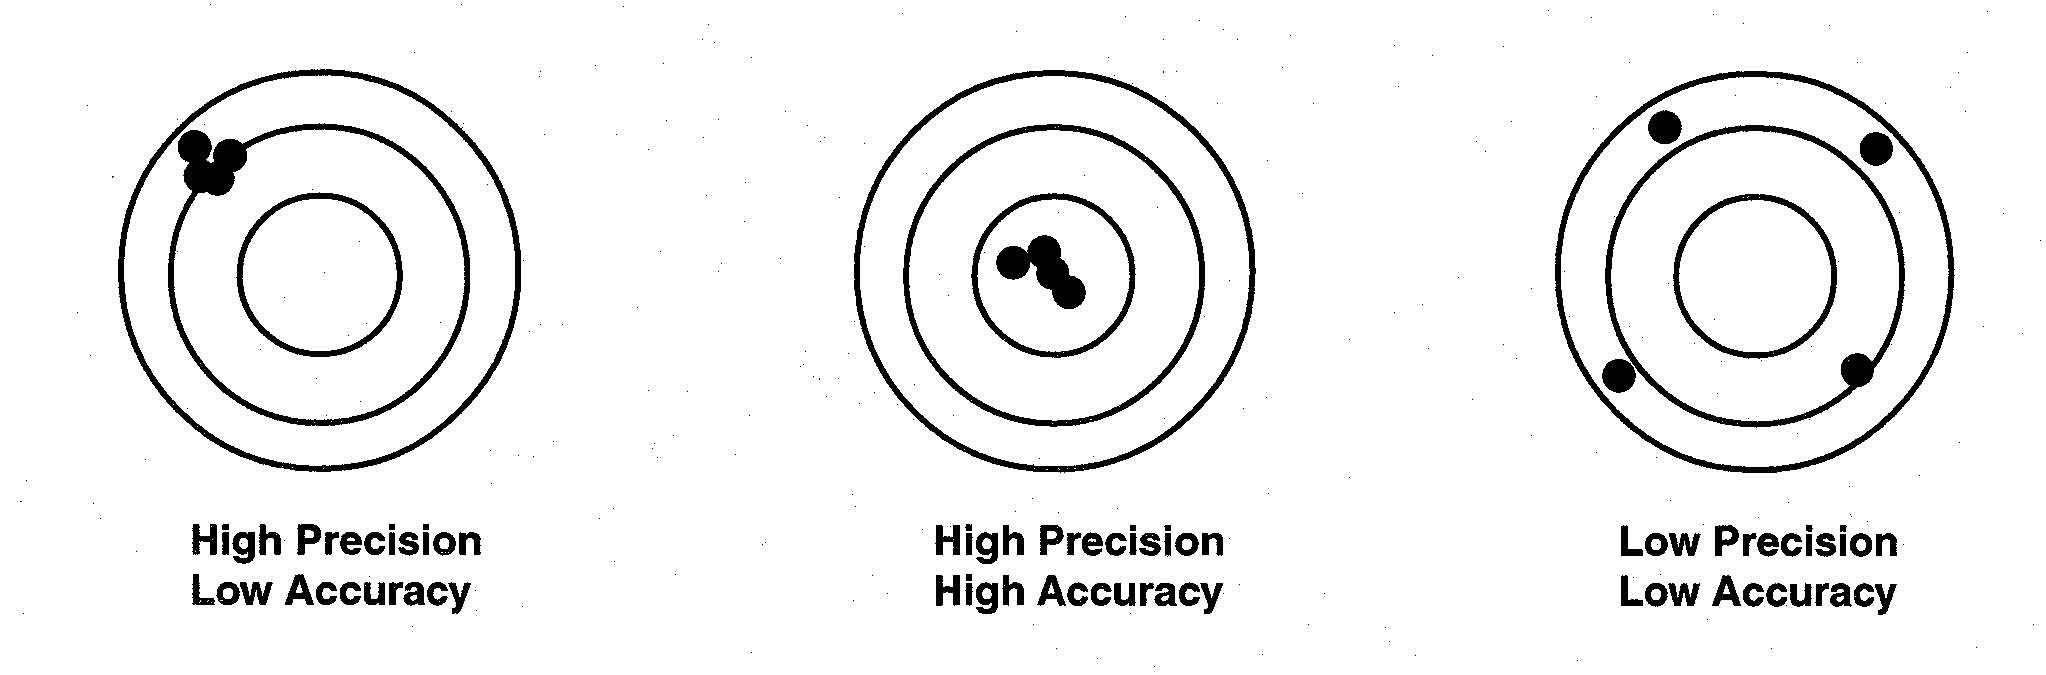 Example depicting precision and accuracy